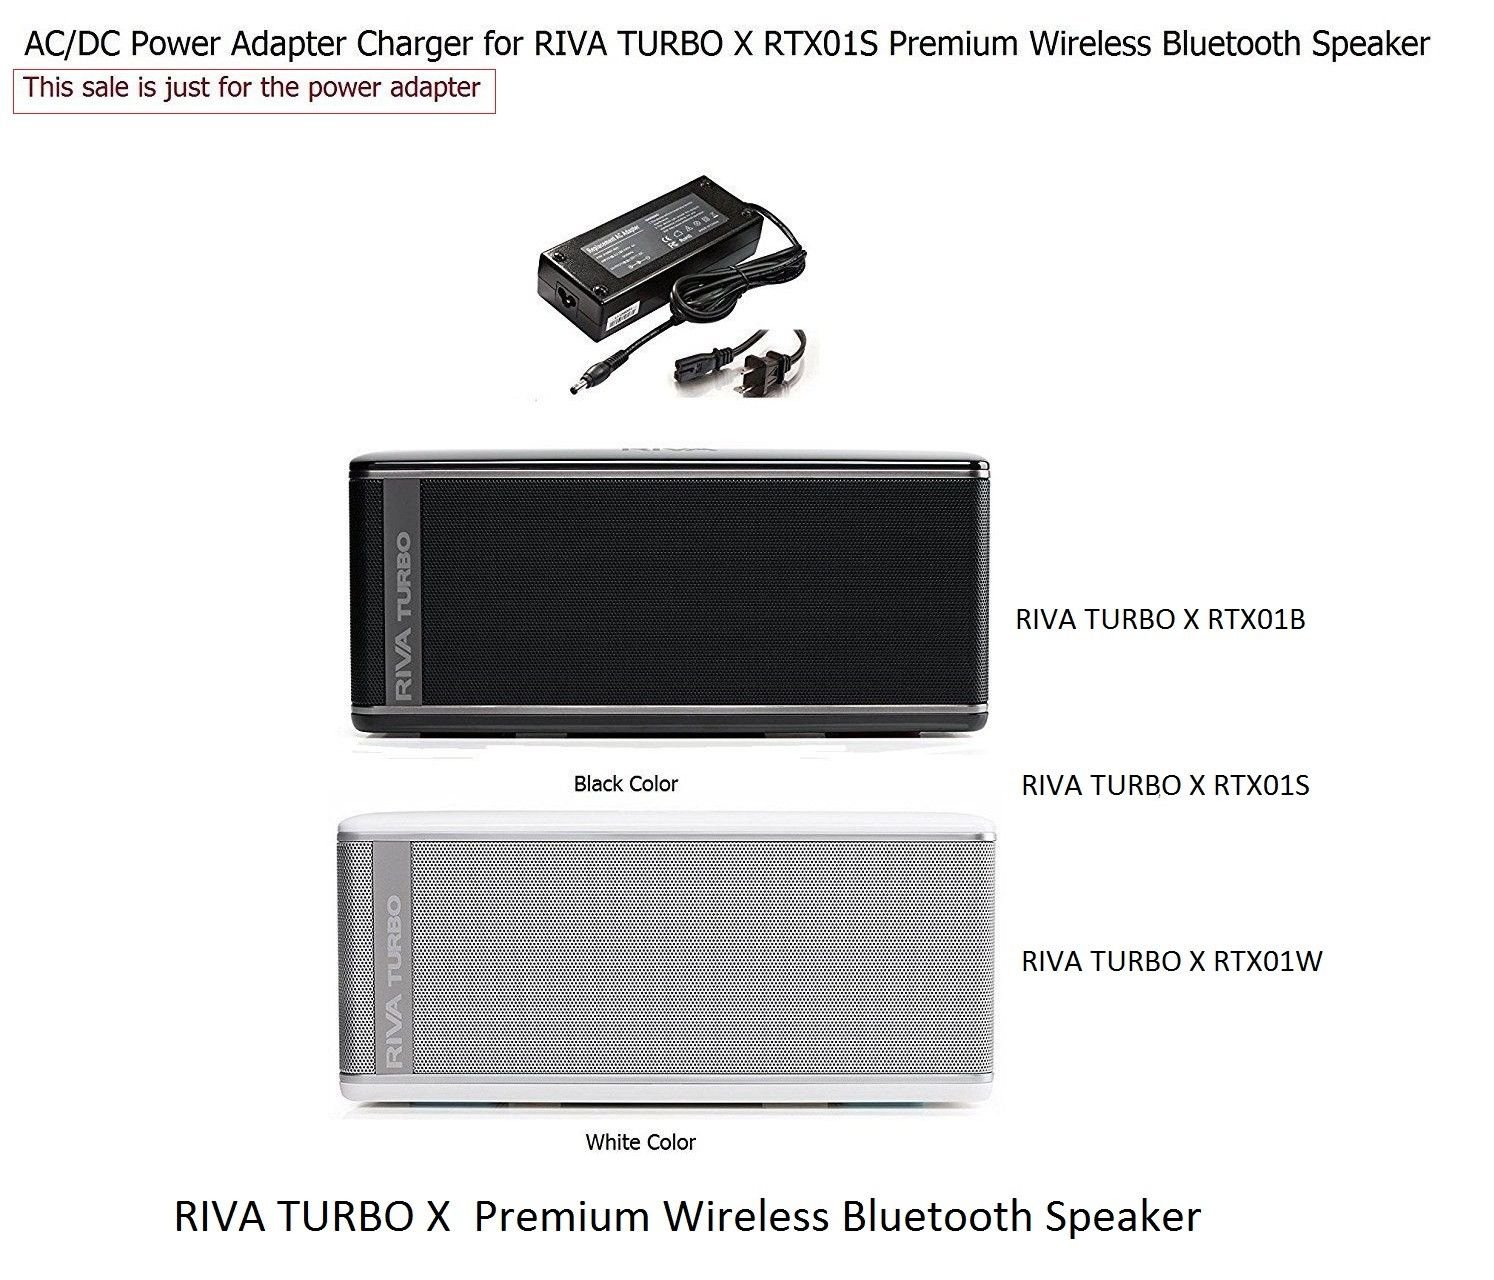 Amazon.com: Charger for RIVA TURBO X Premium Bluetooth Wireless Speaker: Musical Instruments